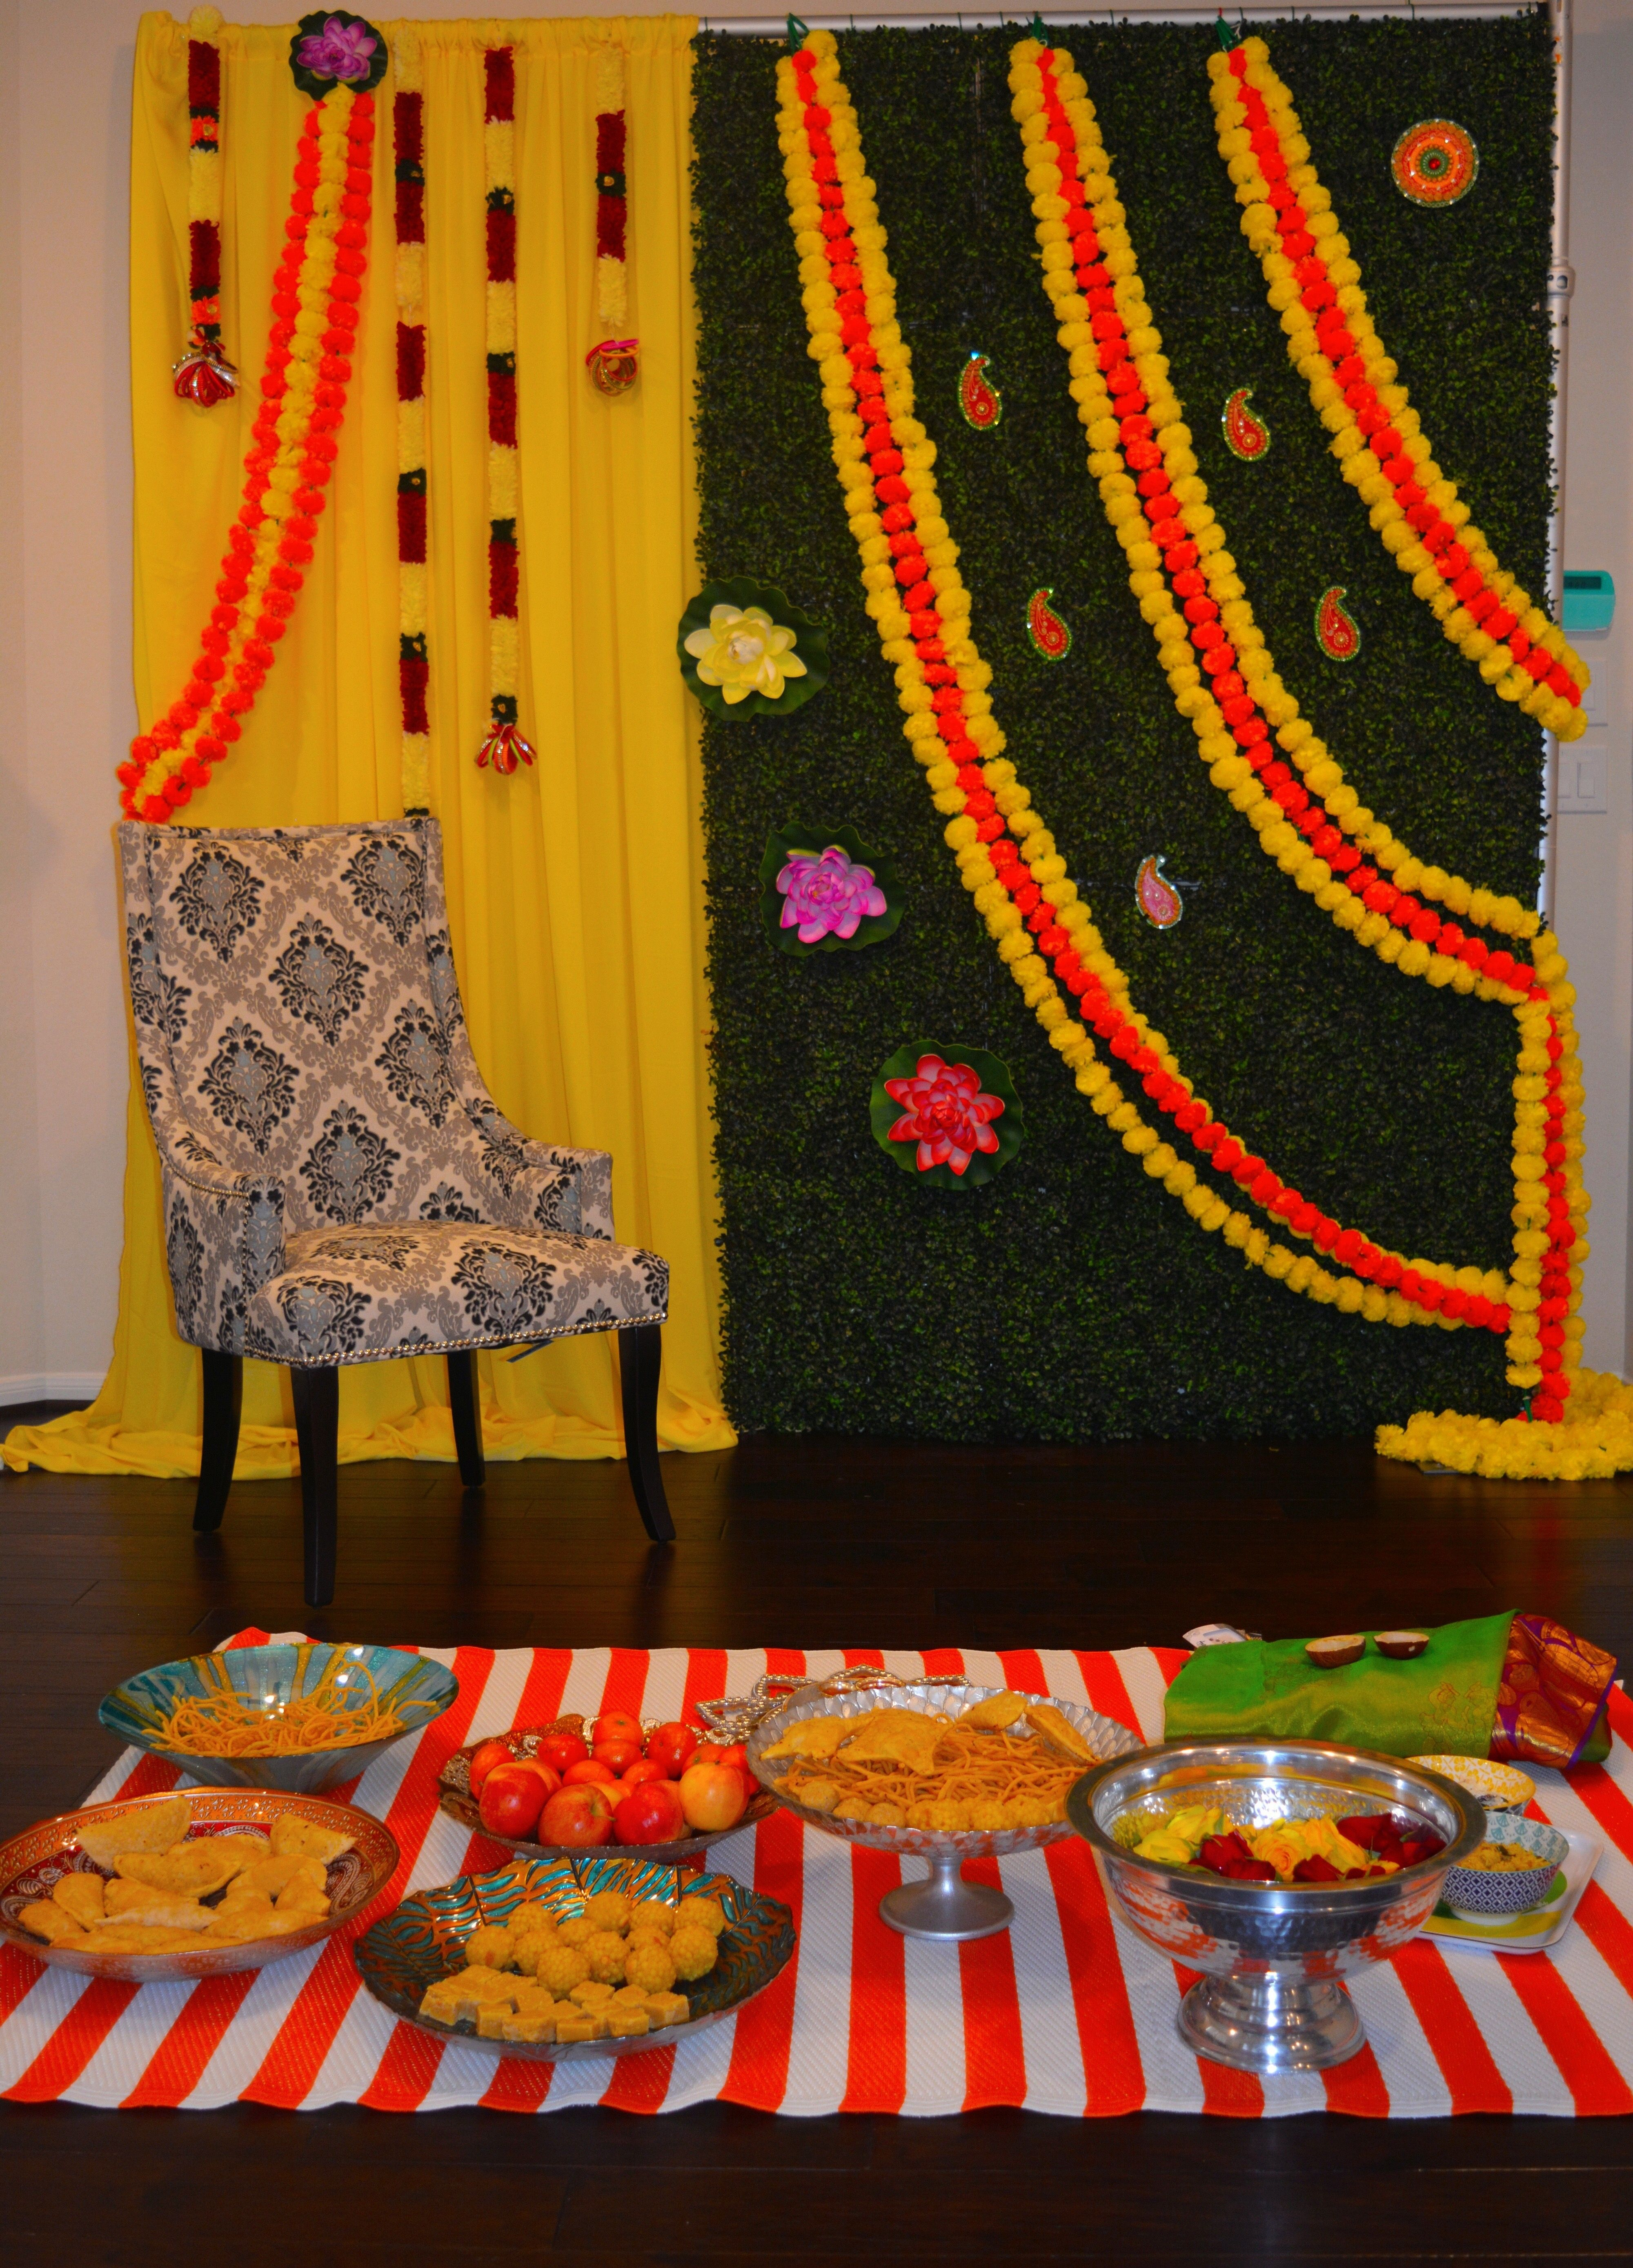 Baby Shower Stage Decoration Ideas In India : shower, stage, decoration, ideas, india, Seemantham, Ideas, Indian, Showers,, Shower, Decorations,, Photography